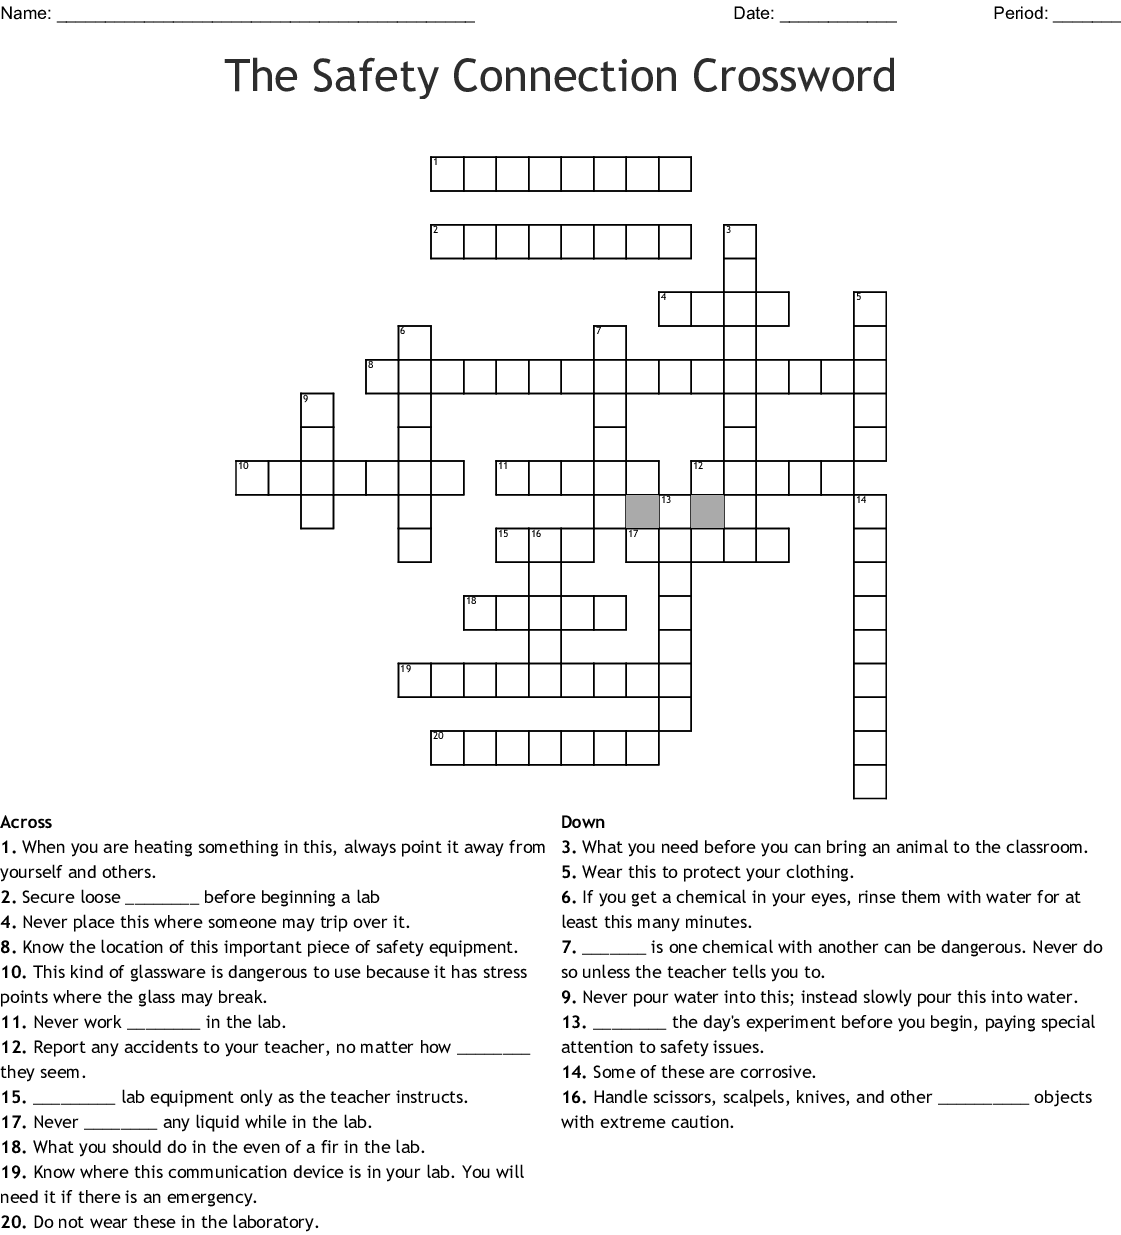 Science Lab Safety Rules Crossword - WordMint